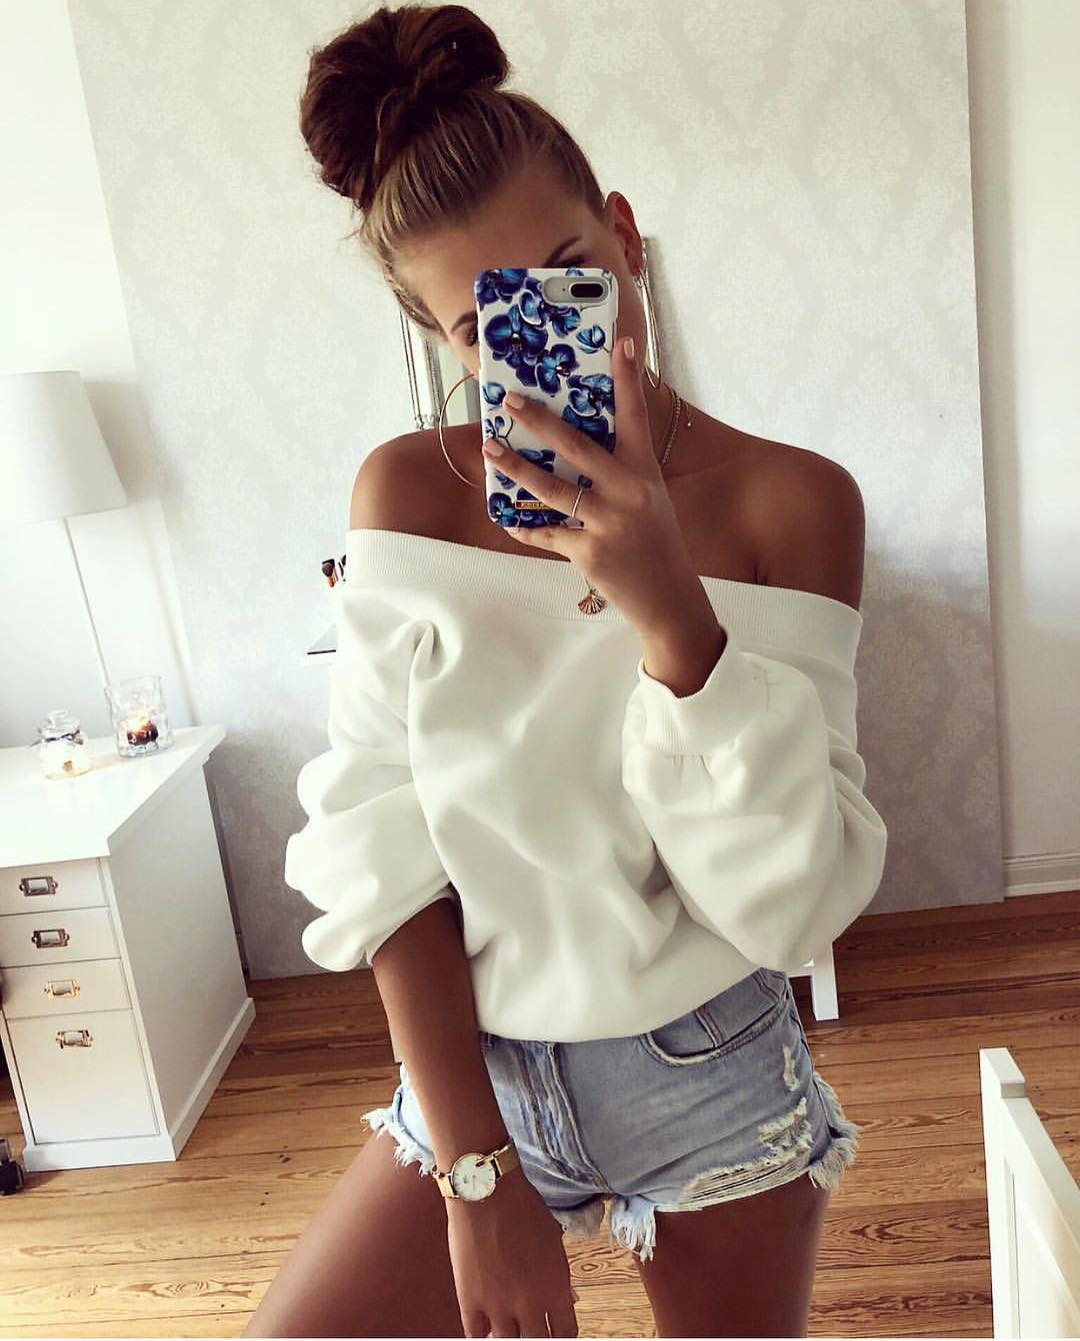 Off-Shoulder White Sweatshirt And Wash Blue Ripped Denim Shorts For Summer 2020